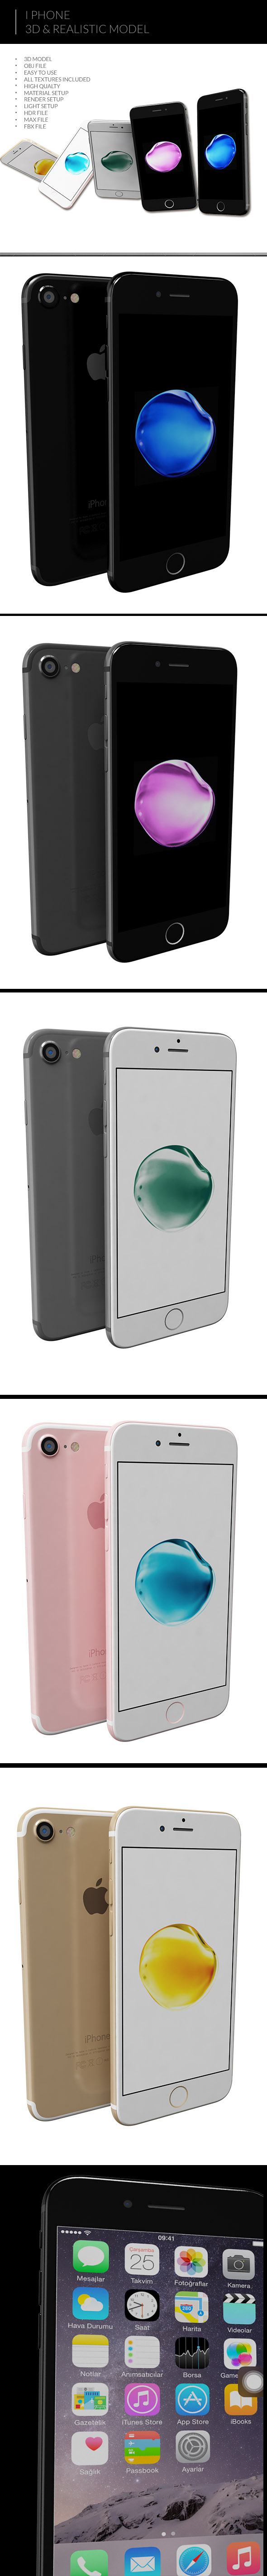 iPhone 7 3D Model - 3DOcean Item for Sale